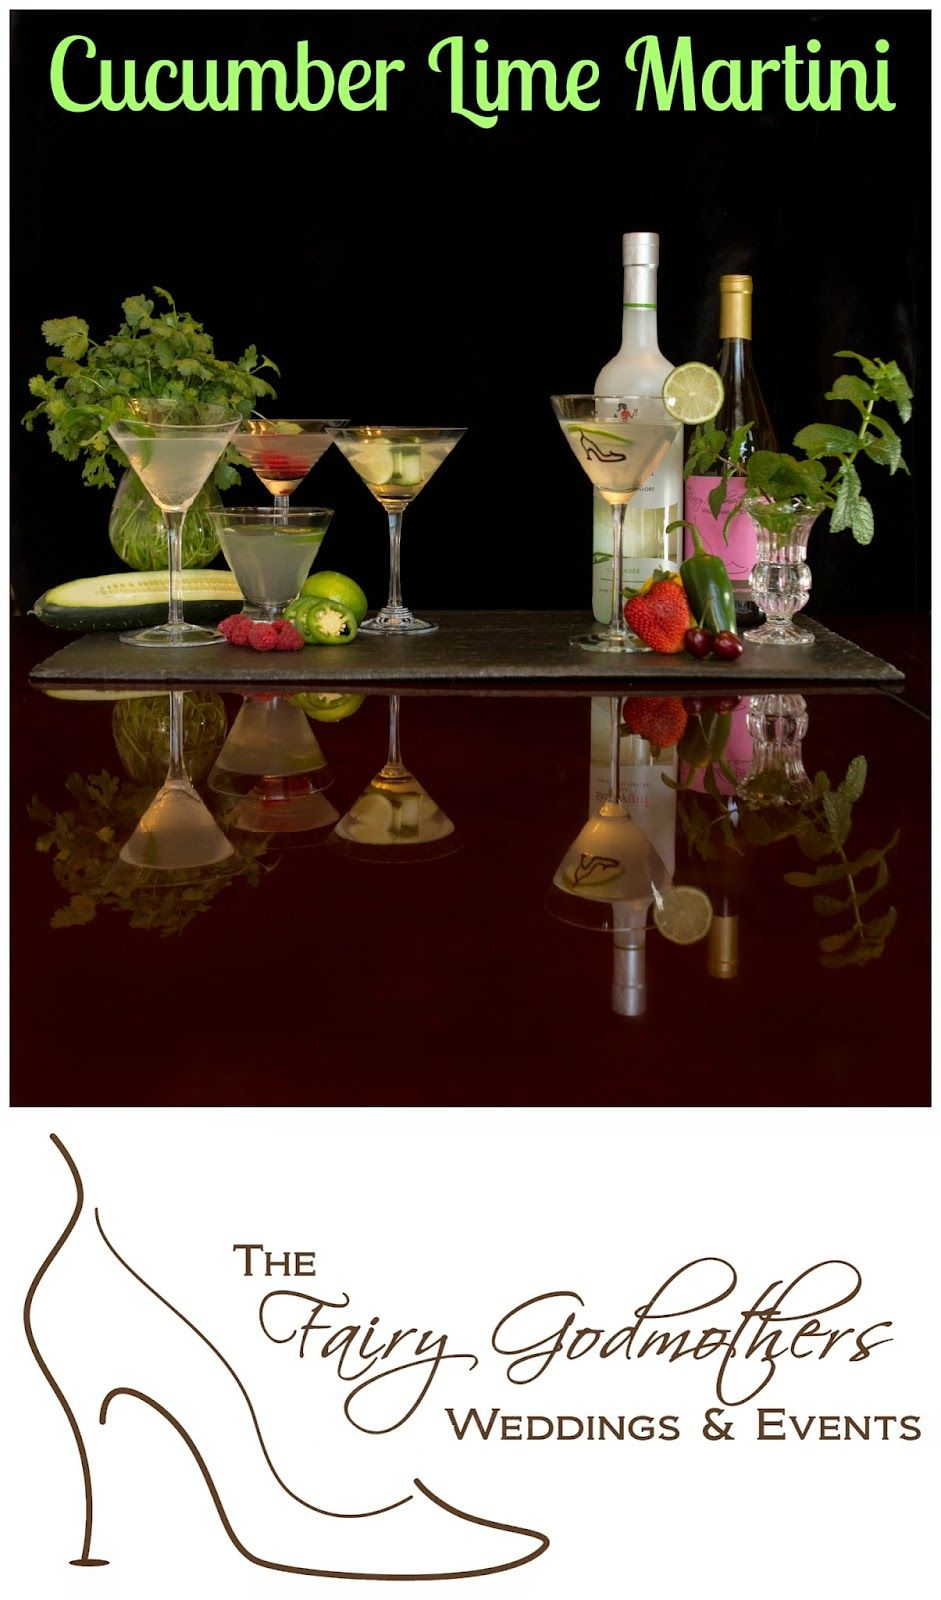 Cucumber Lime Martini Signature Drink Station Via Your Very Own